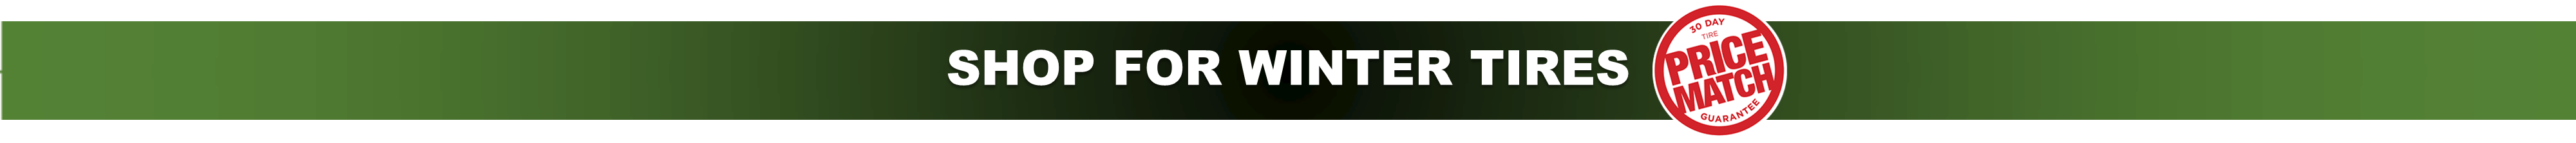 SHOP FOR WINTER TIRES